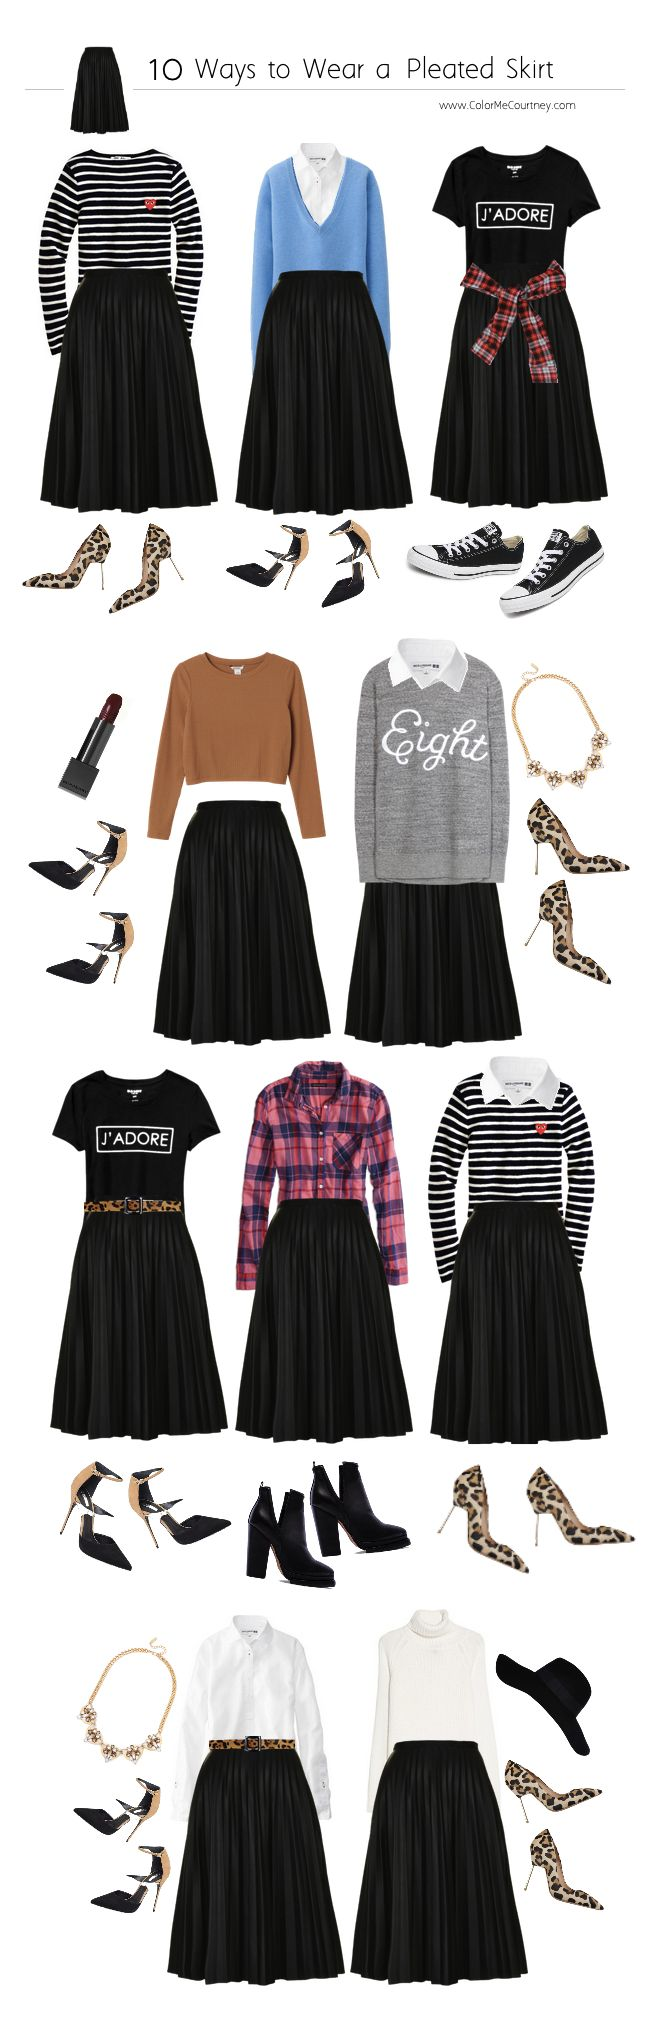 10 ways to wear a pleated skirt